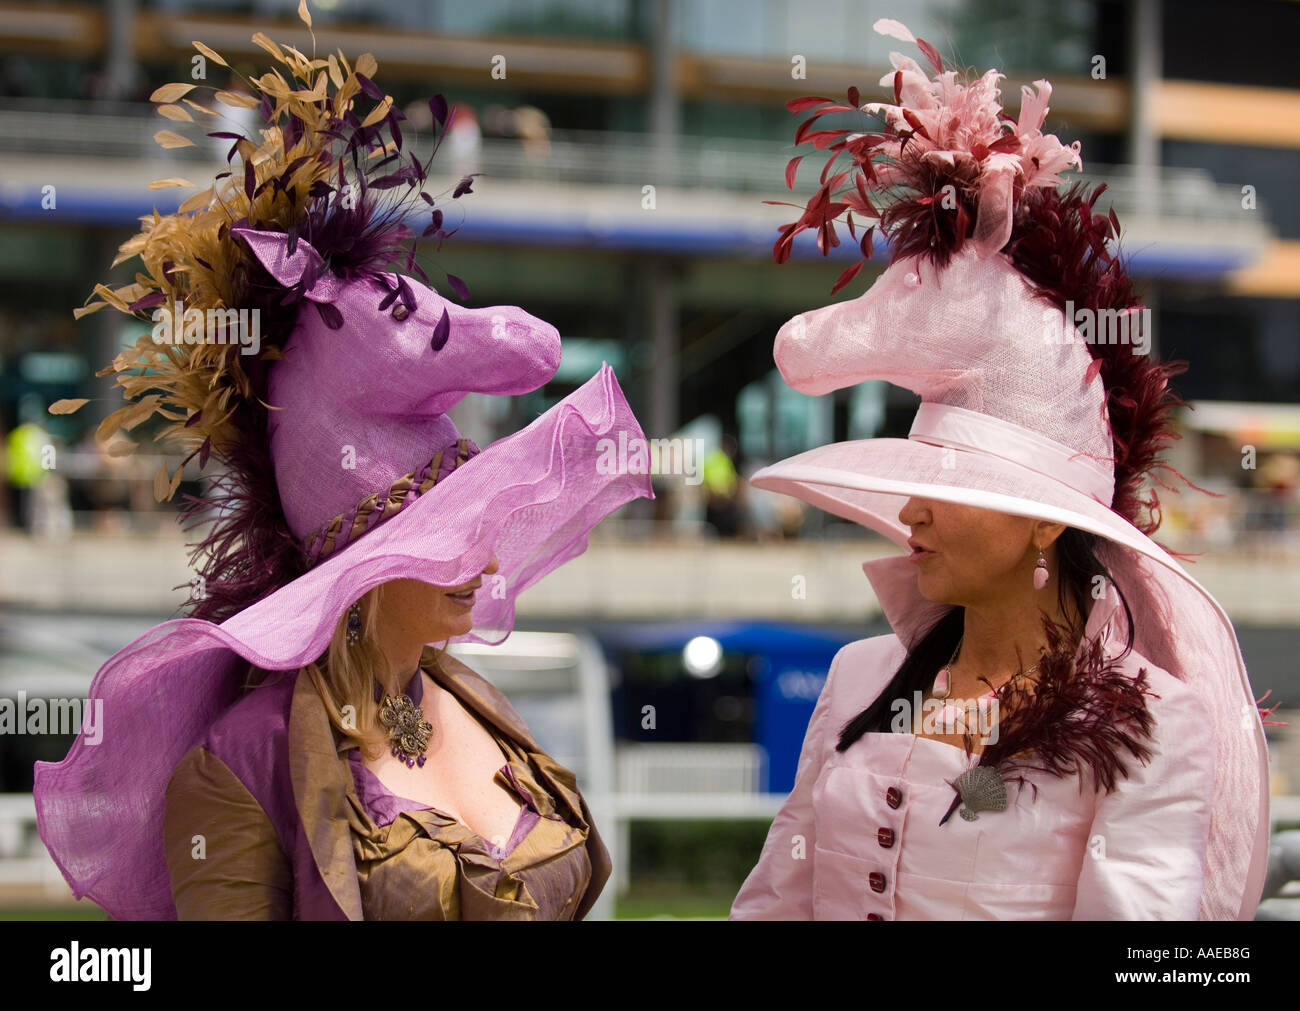 Extravagant fashion at Royal Ascot - Stock Image